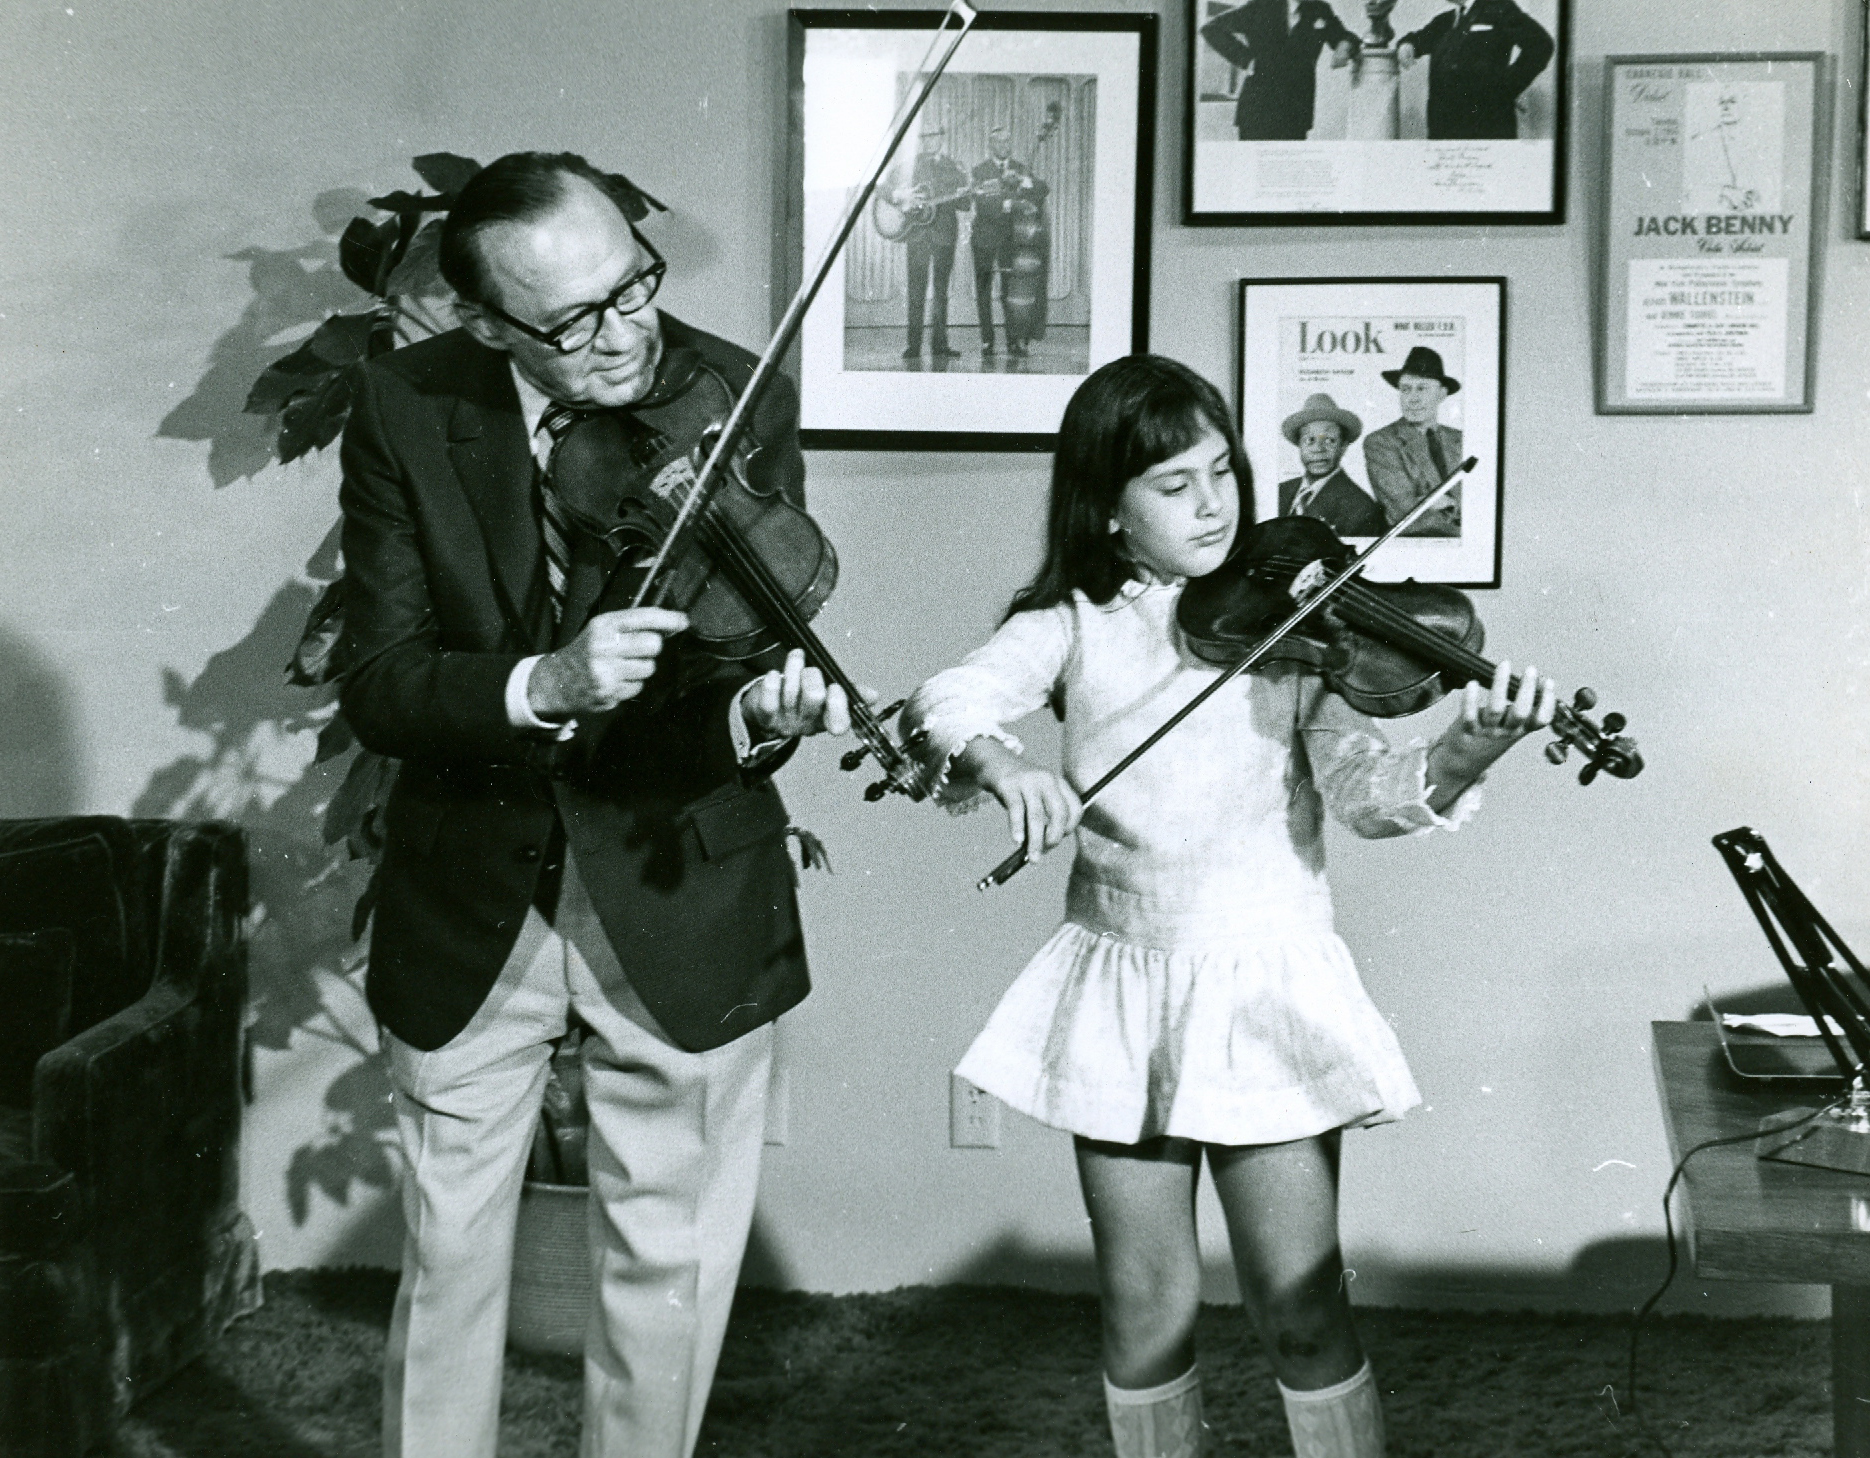 Jack Benny and Dylana